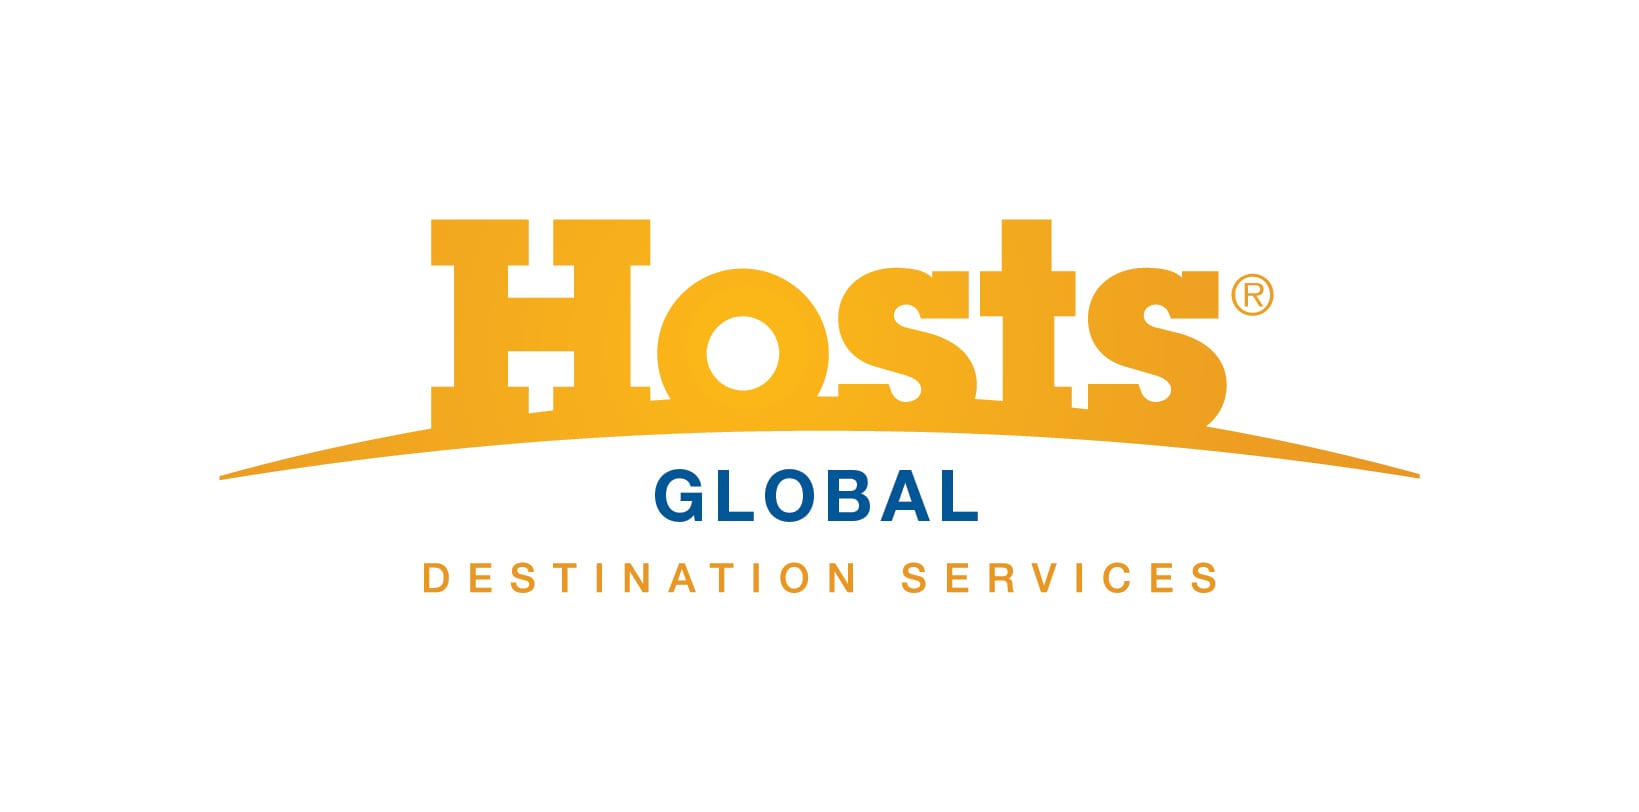 hosts global logo